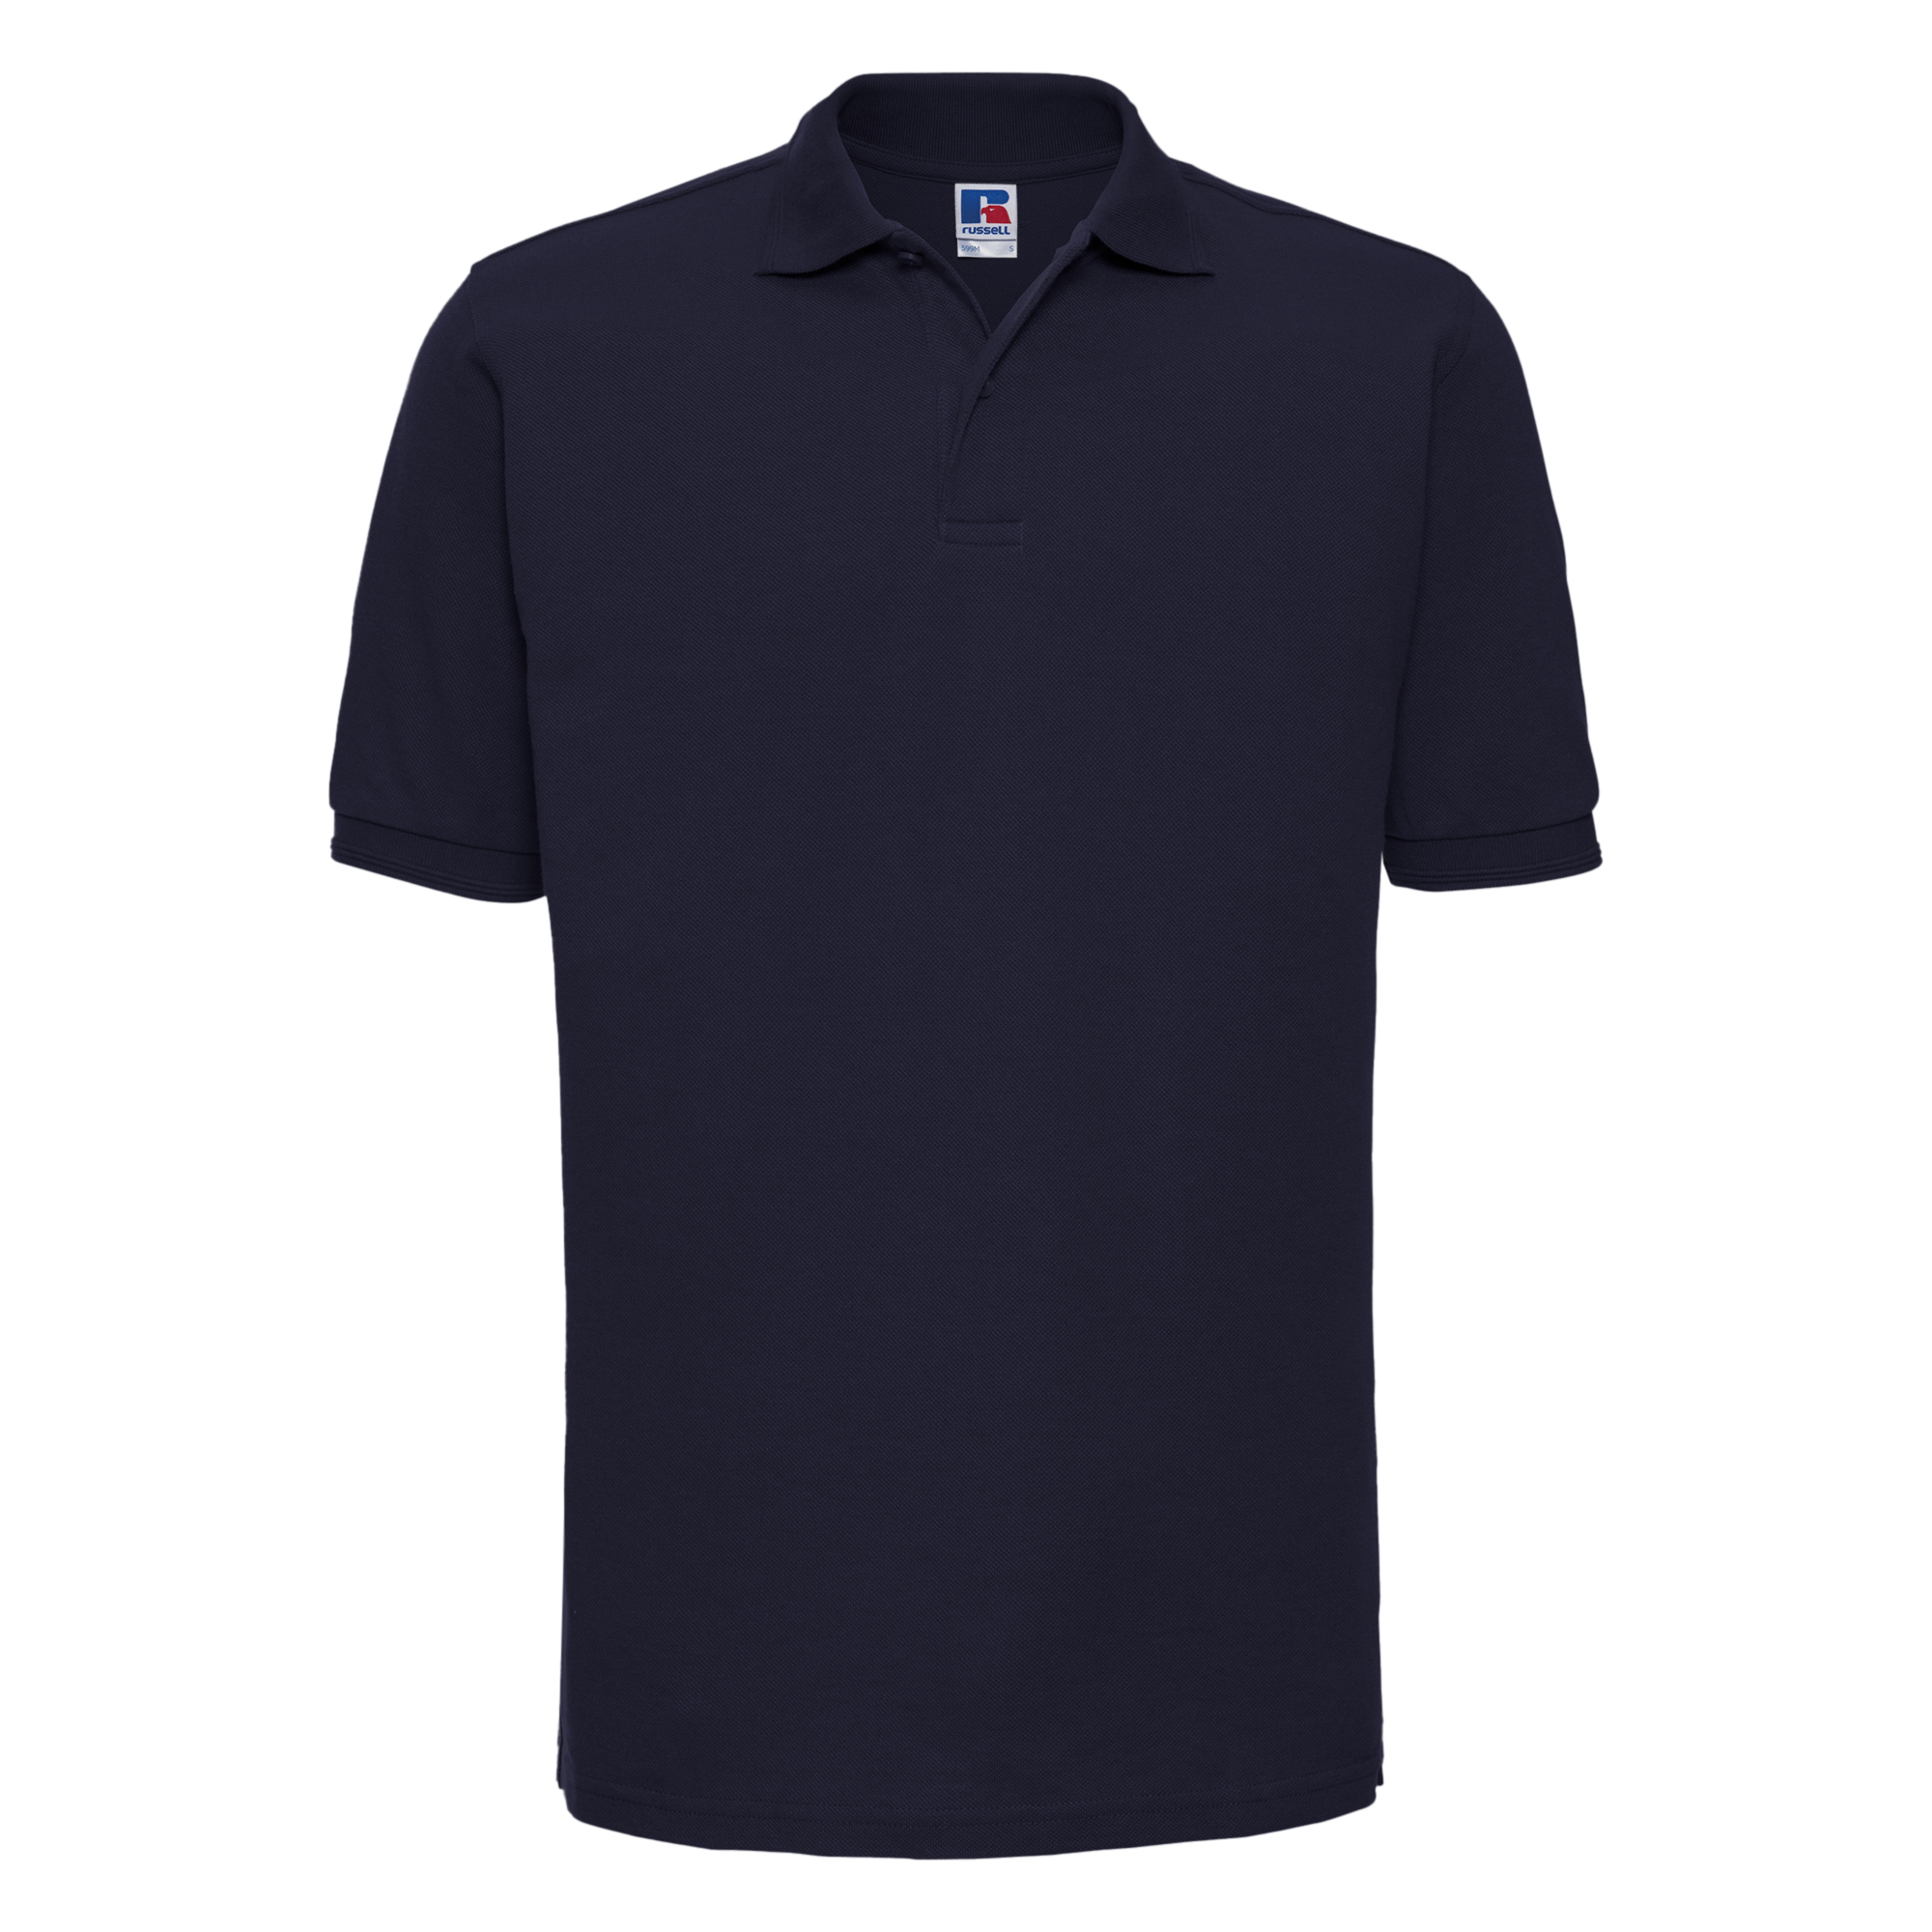 Russell Mens Ripple Collar & Cuff Short Sleeve Polo Shirt (3XL) (French Navy)